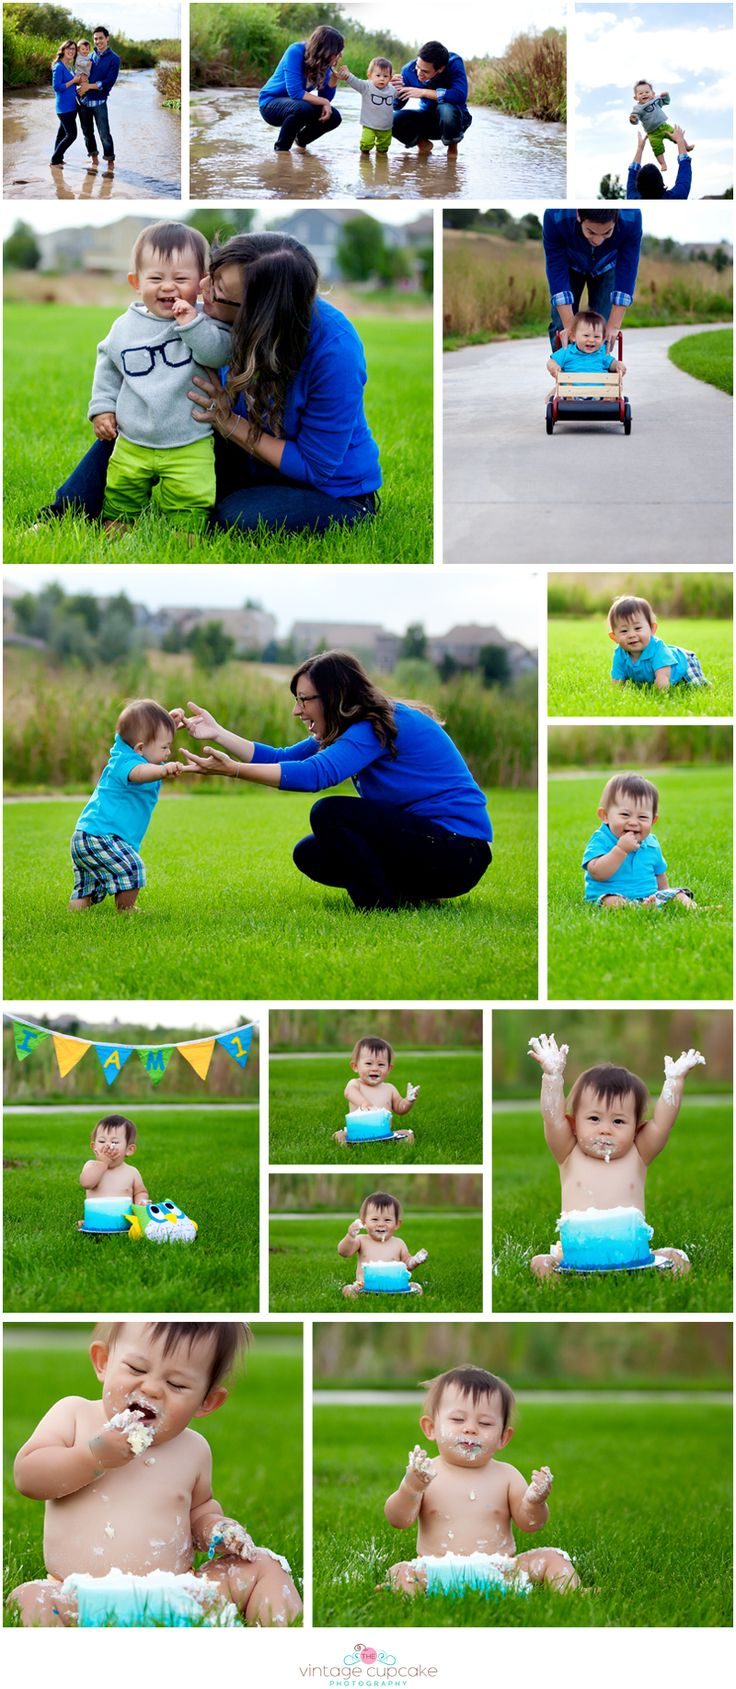 one year cake smash session, denver, colorado child and family photographer - the vintage cupcake photography